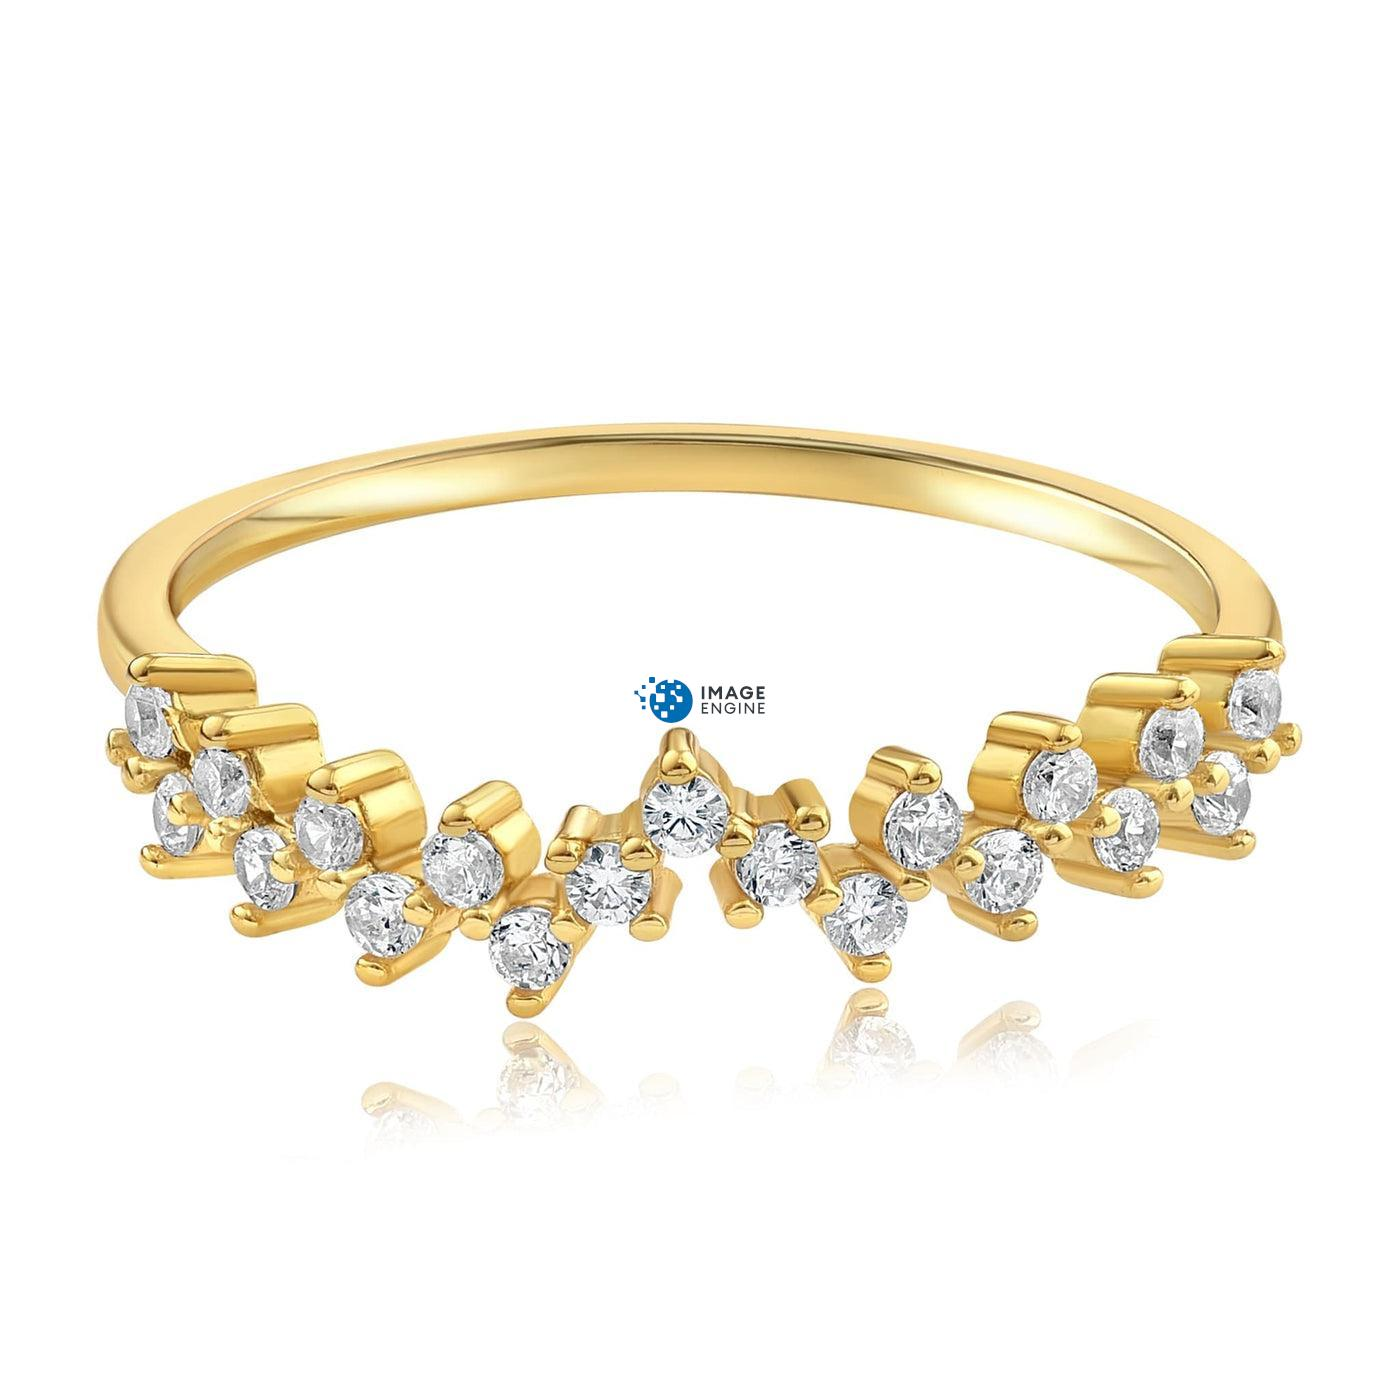 Esther Petite Cluster Ring - Front View Facing Down - 18K Yellow Gold Vermeil